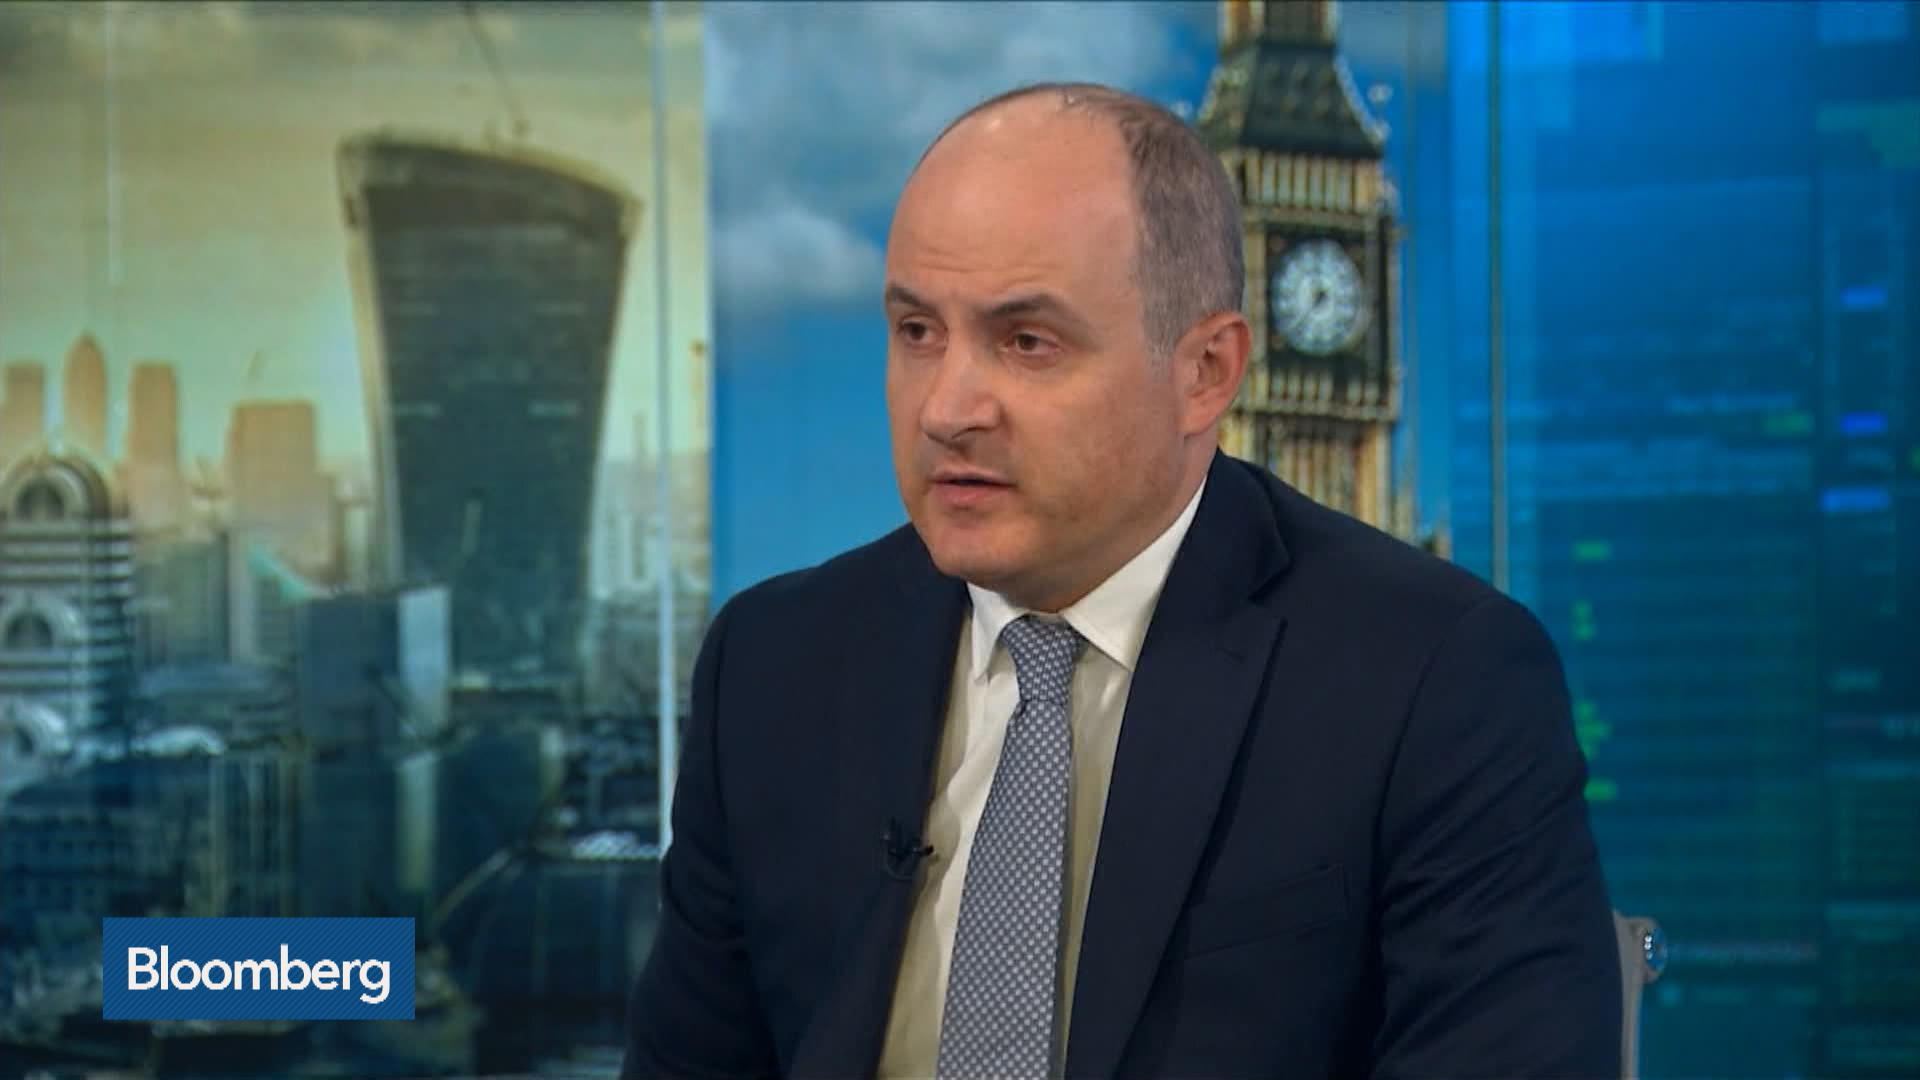 Brexit: Short Pound Against Dollar, Yen, or Gold, Not Euro, Says Credit Agricole